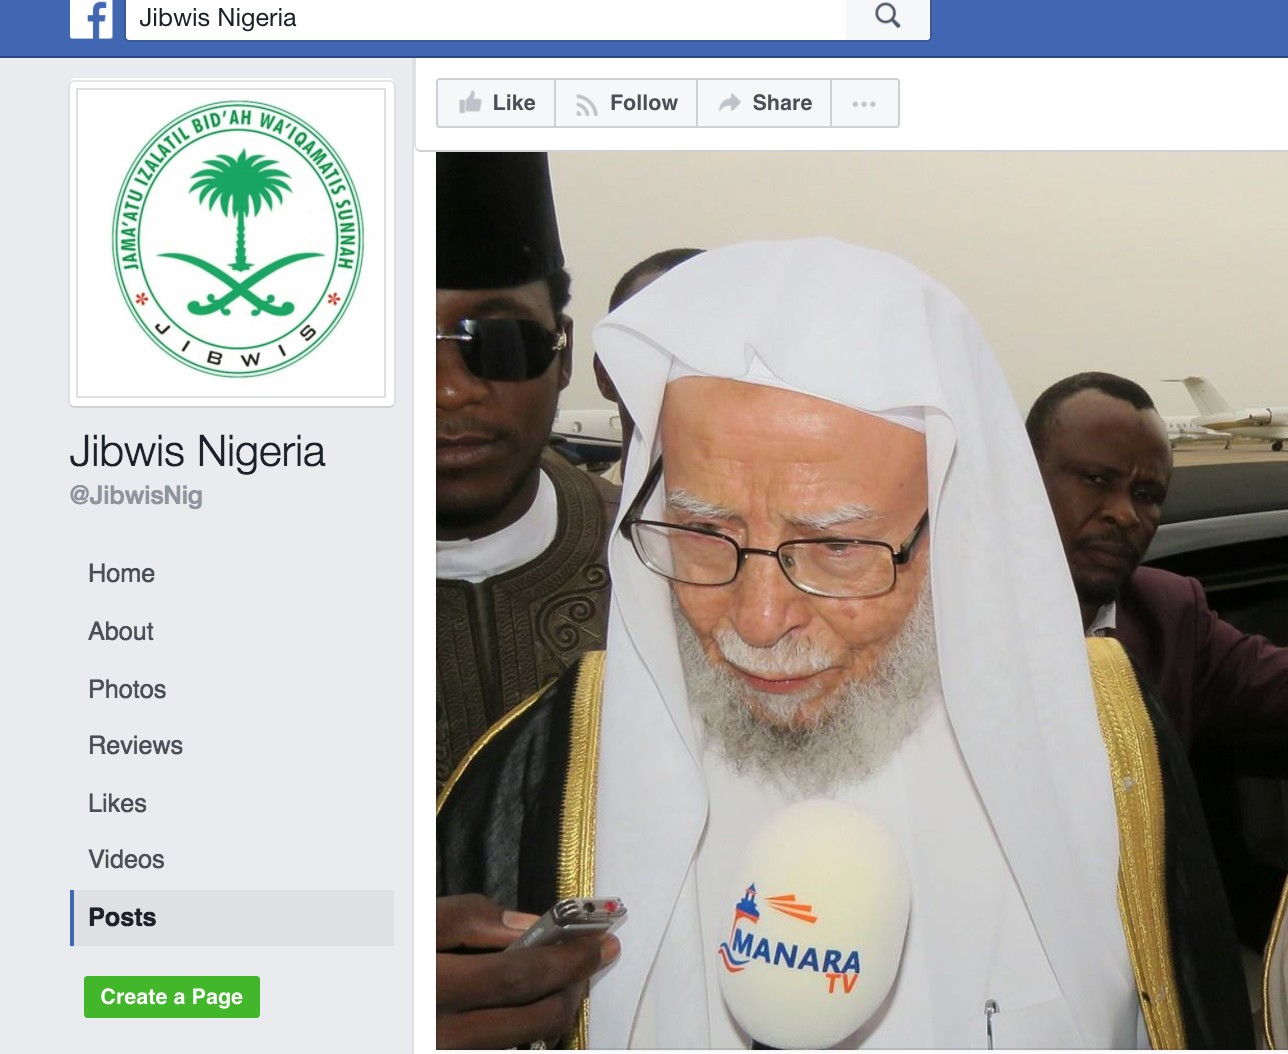 President Muslim World League hosted in Nigeria by JIBWIS